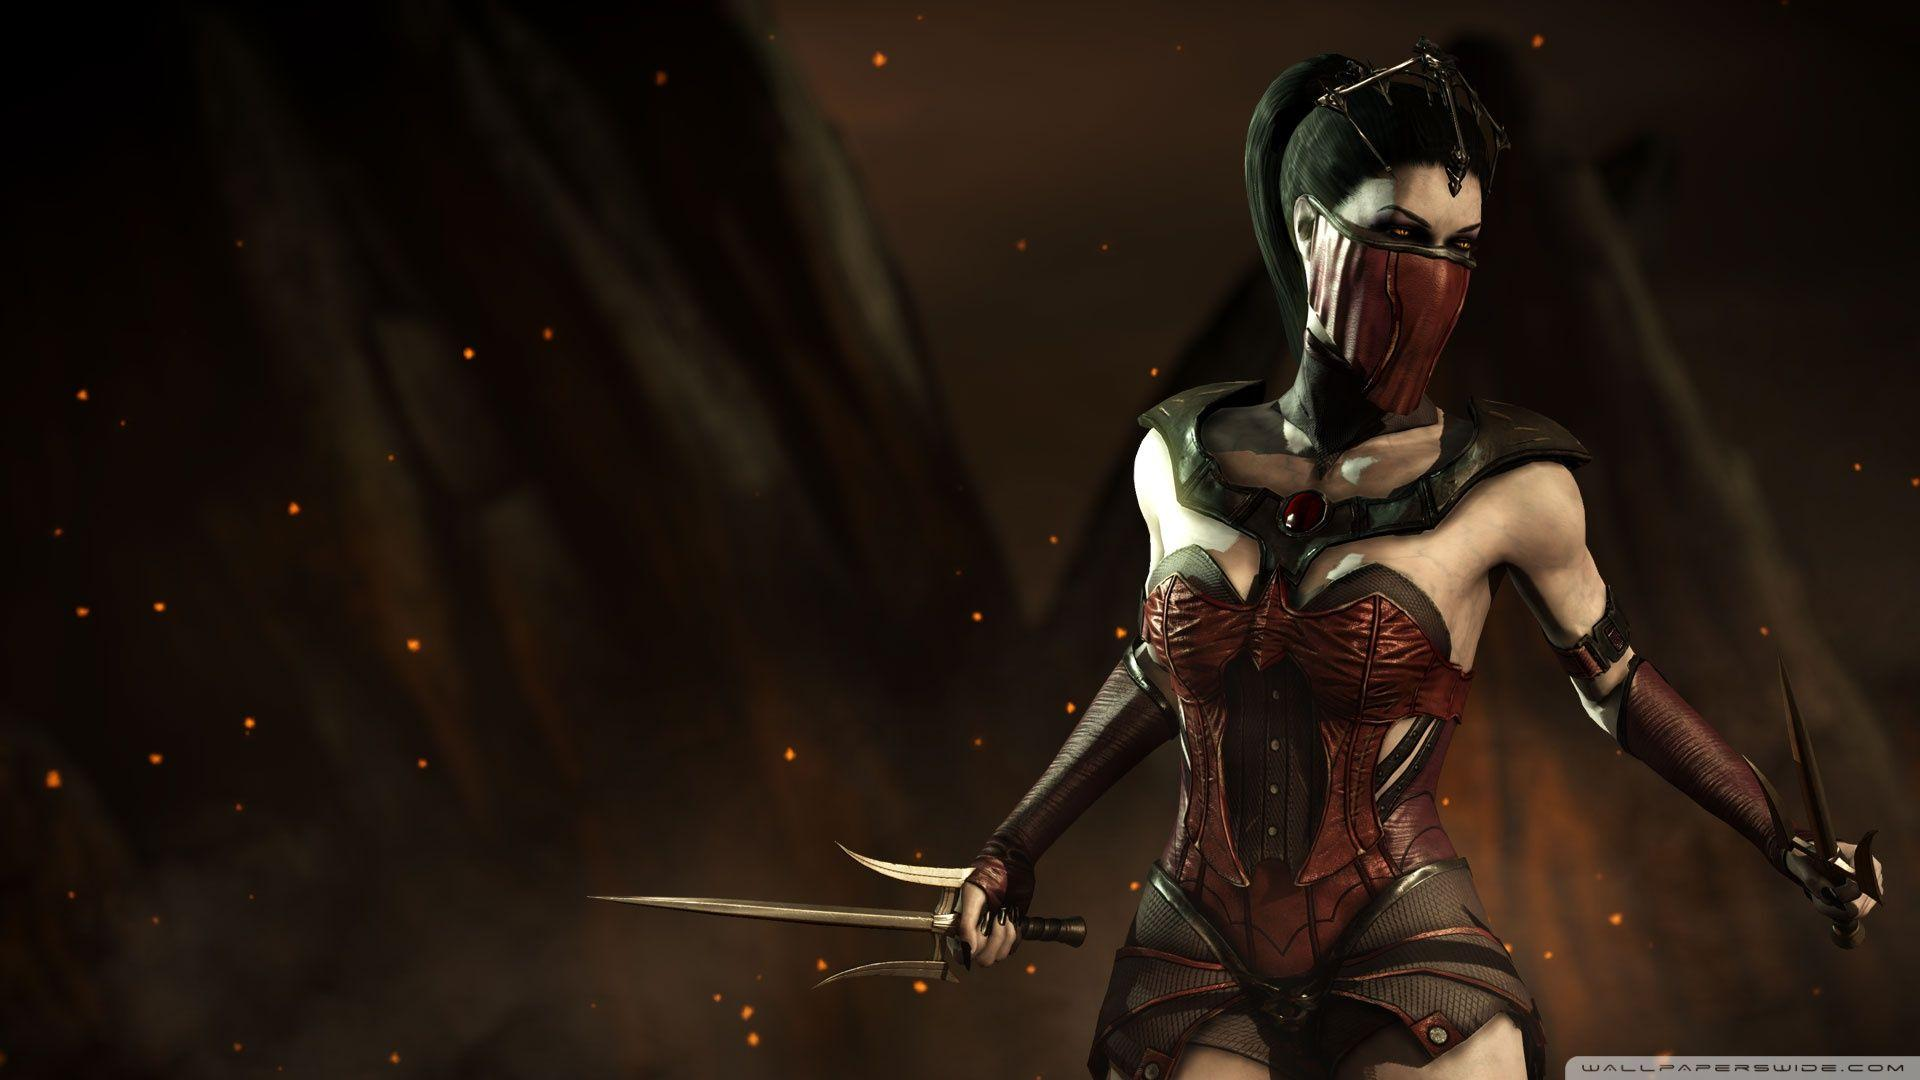 Mortal Kombat Female Characters Hd 3d Wallpapers Wallpaper Cave